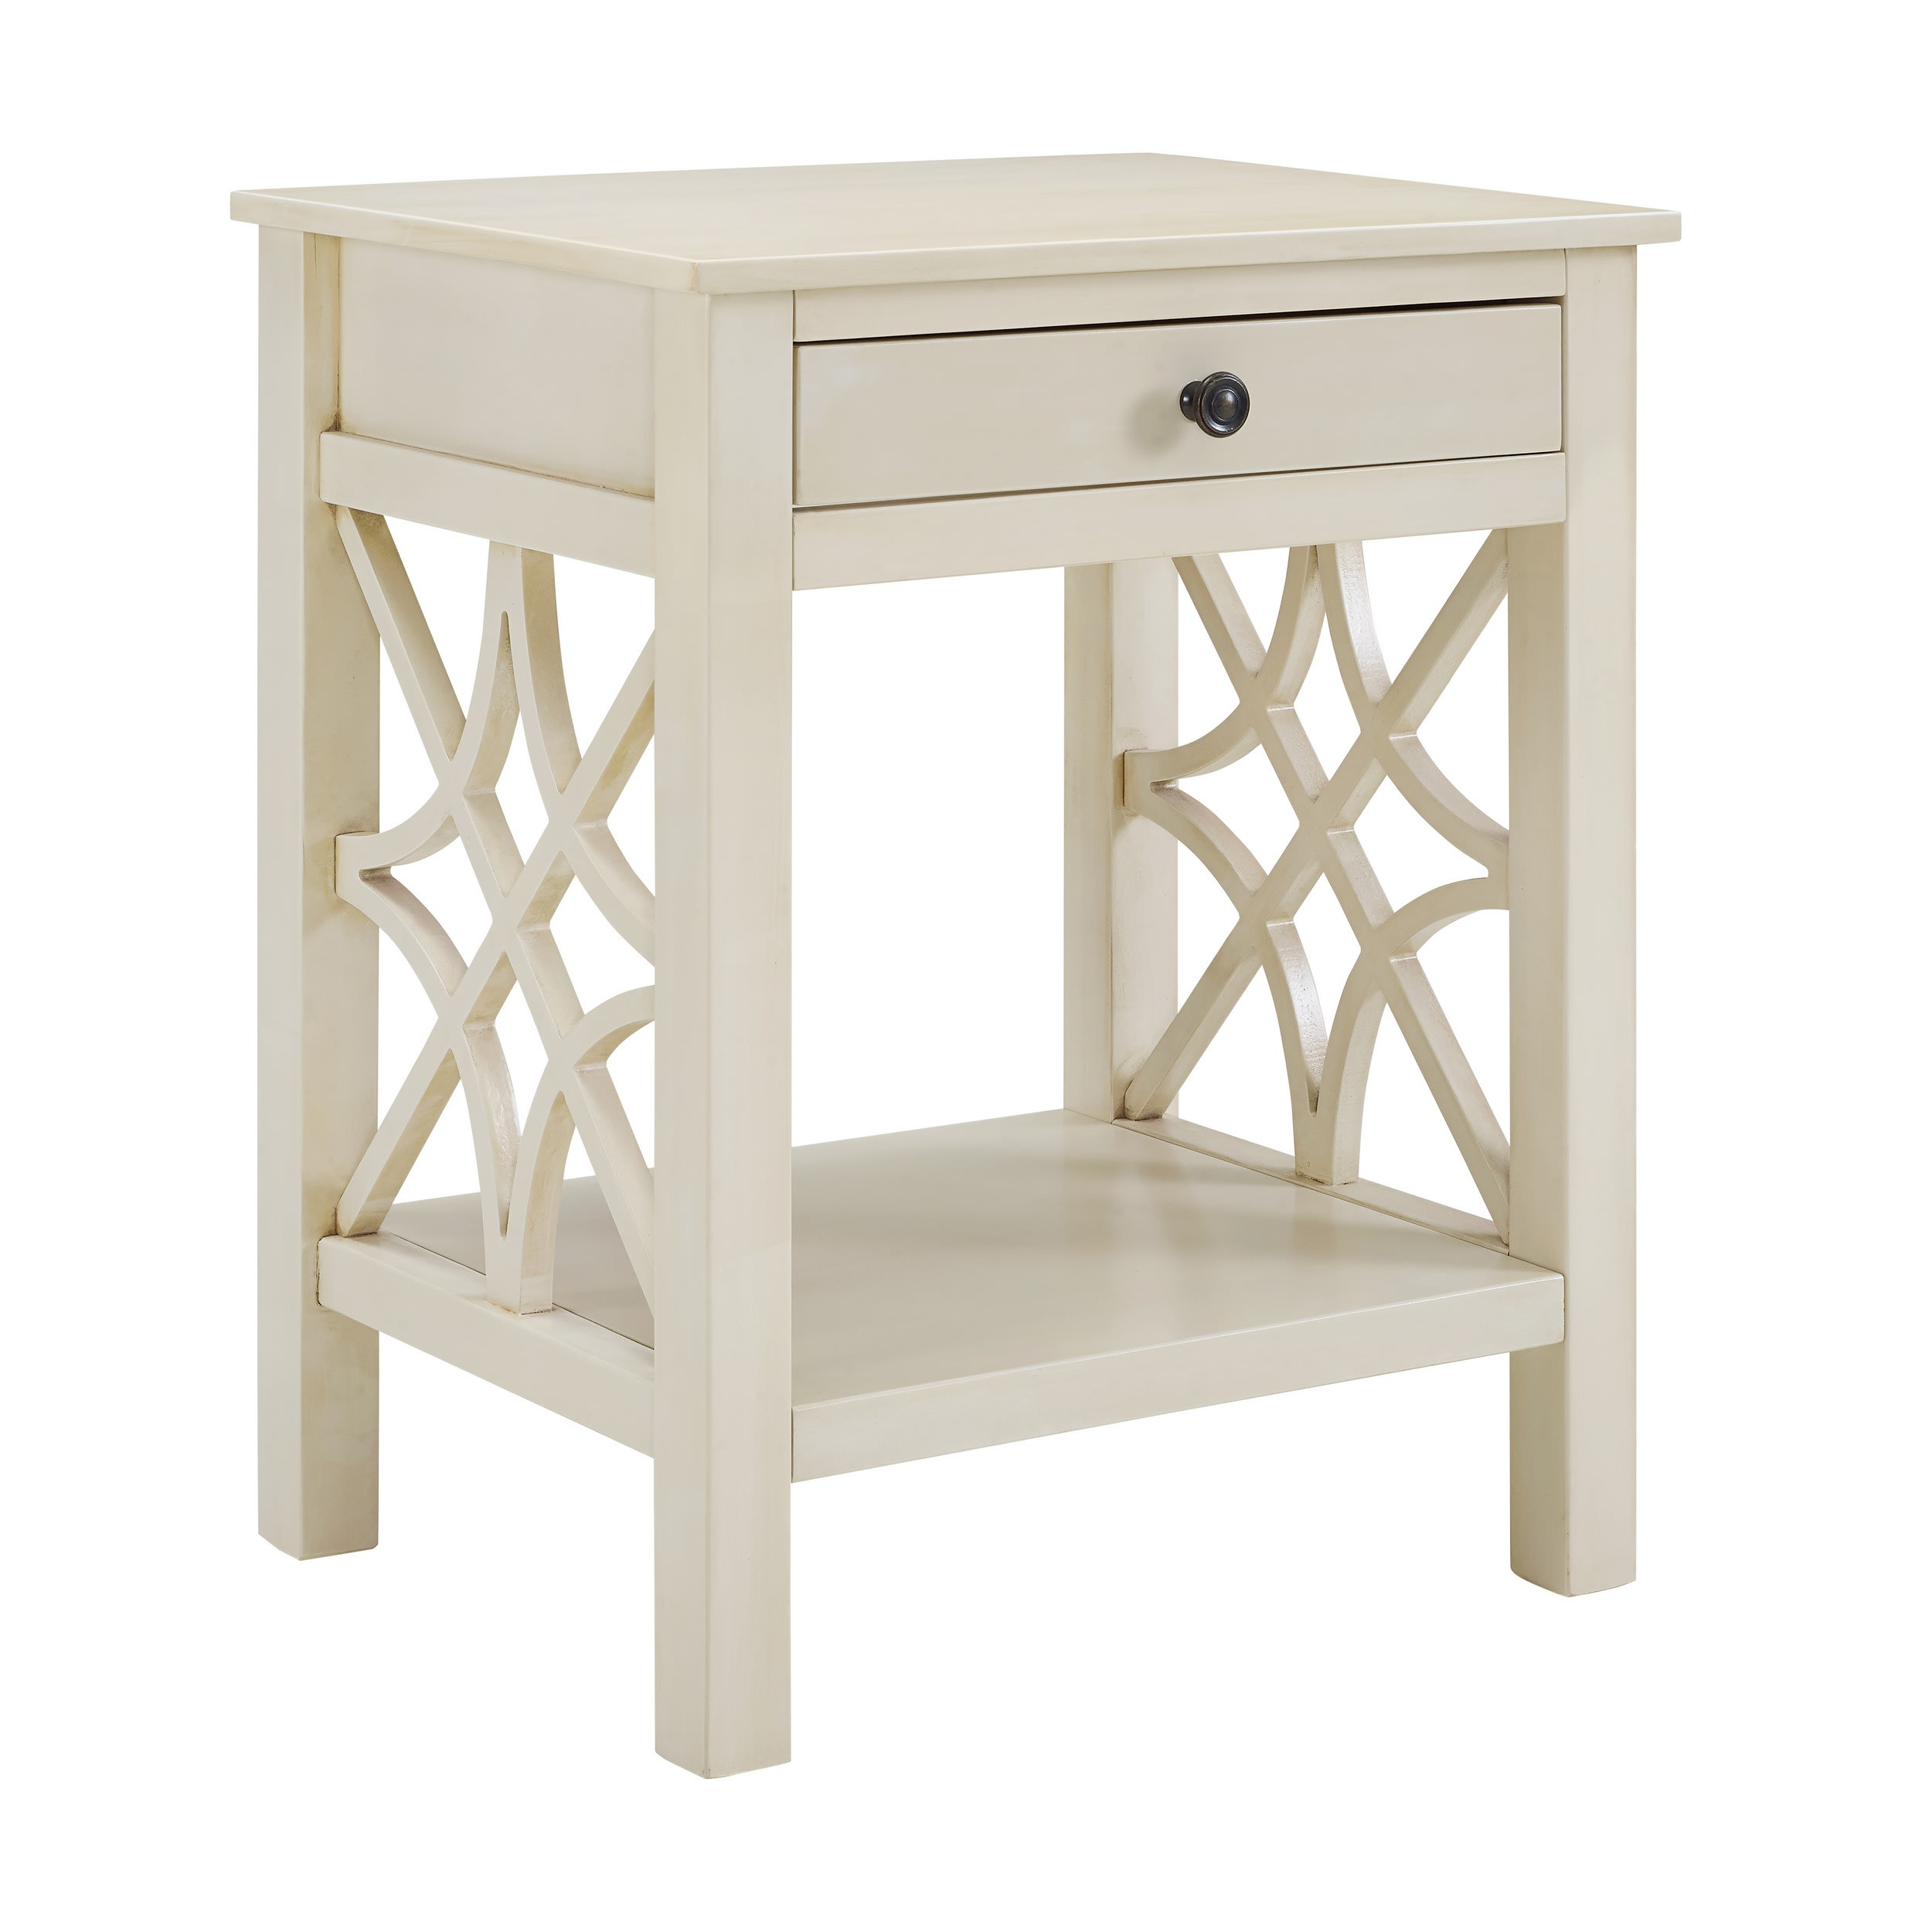 Linon Home Decor Products Inc WM129WHT01U Whitley Antique White End Table